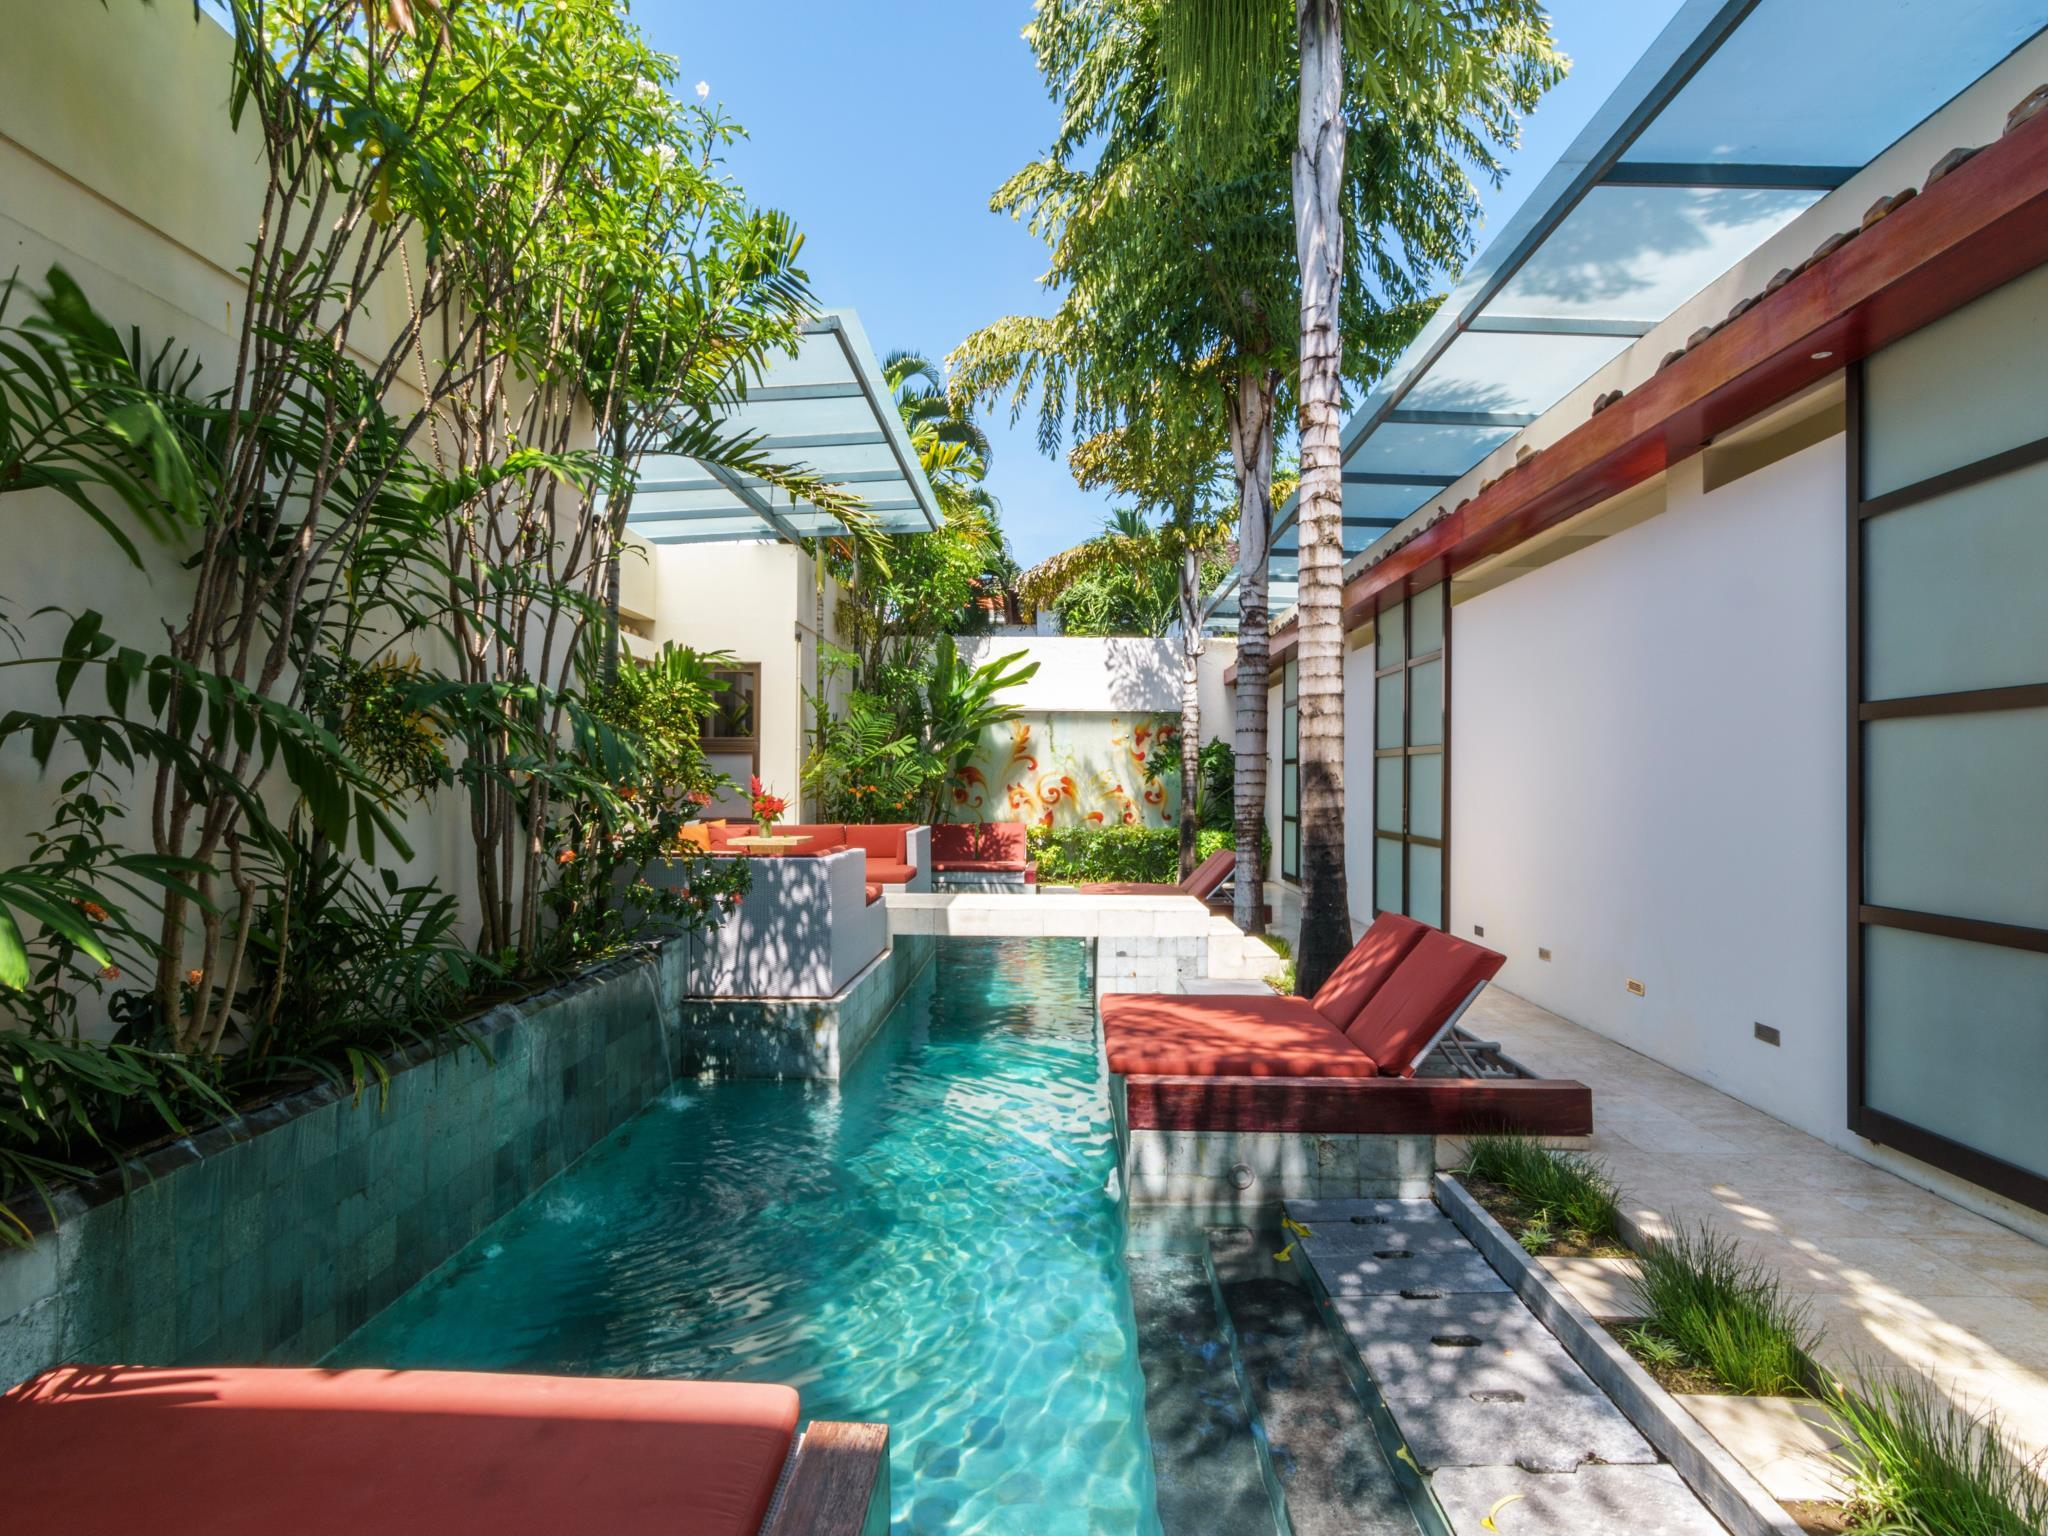 Bali Ginger Suites and Villa ホテル詳細